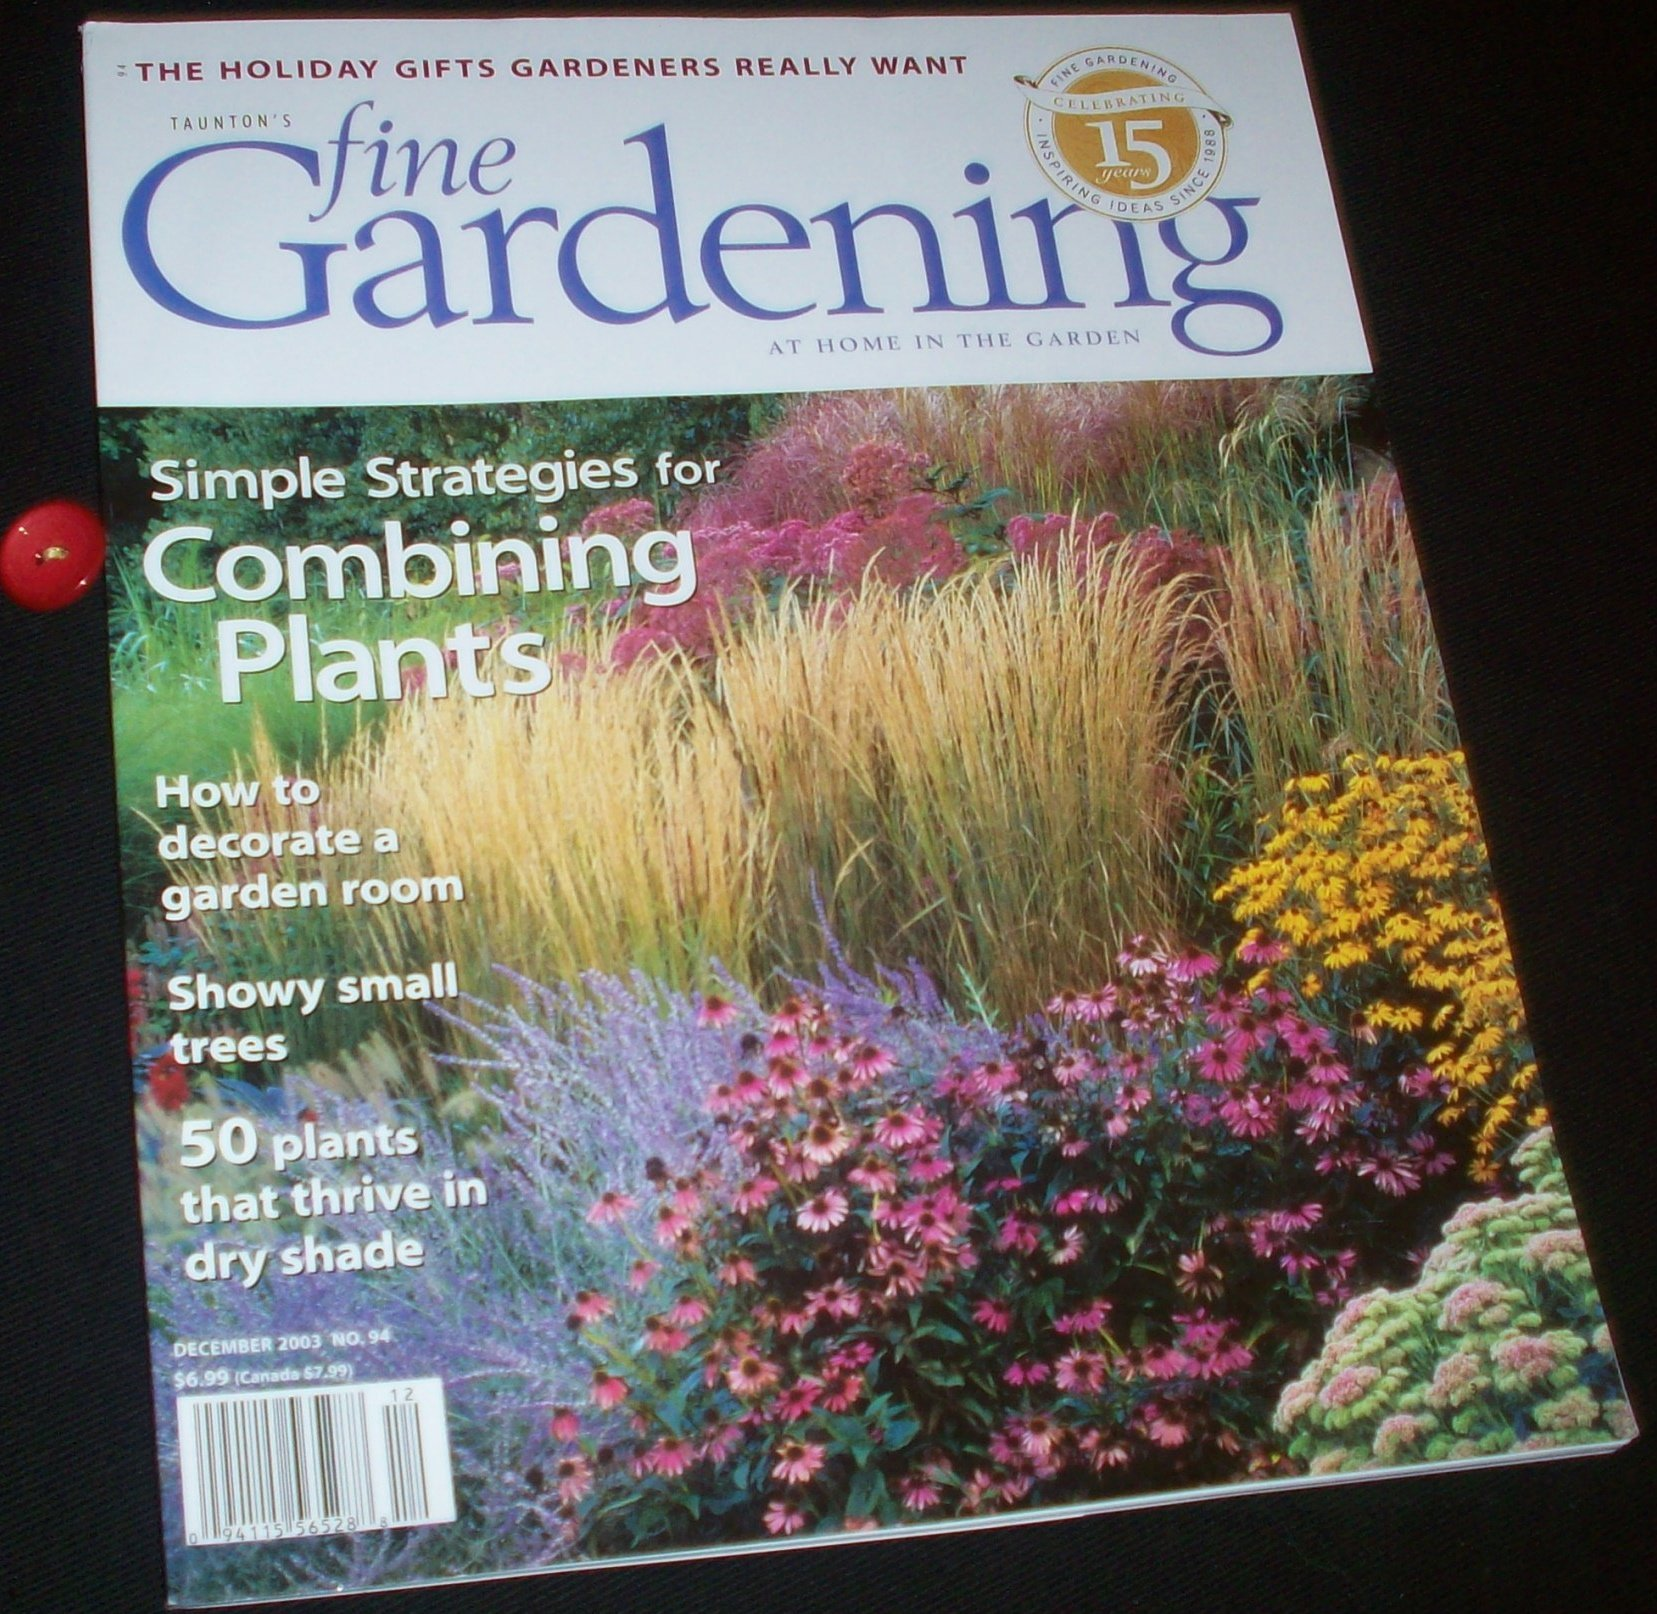 Tauntons Fine Gardening Magazine Volume 94, December 2003 Complete Issue Including Conquering Dry Shade